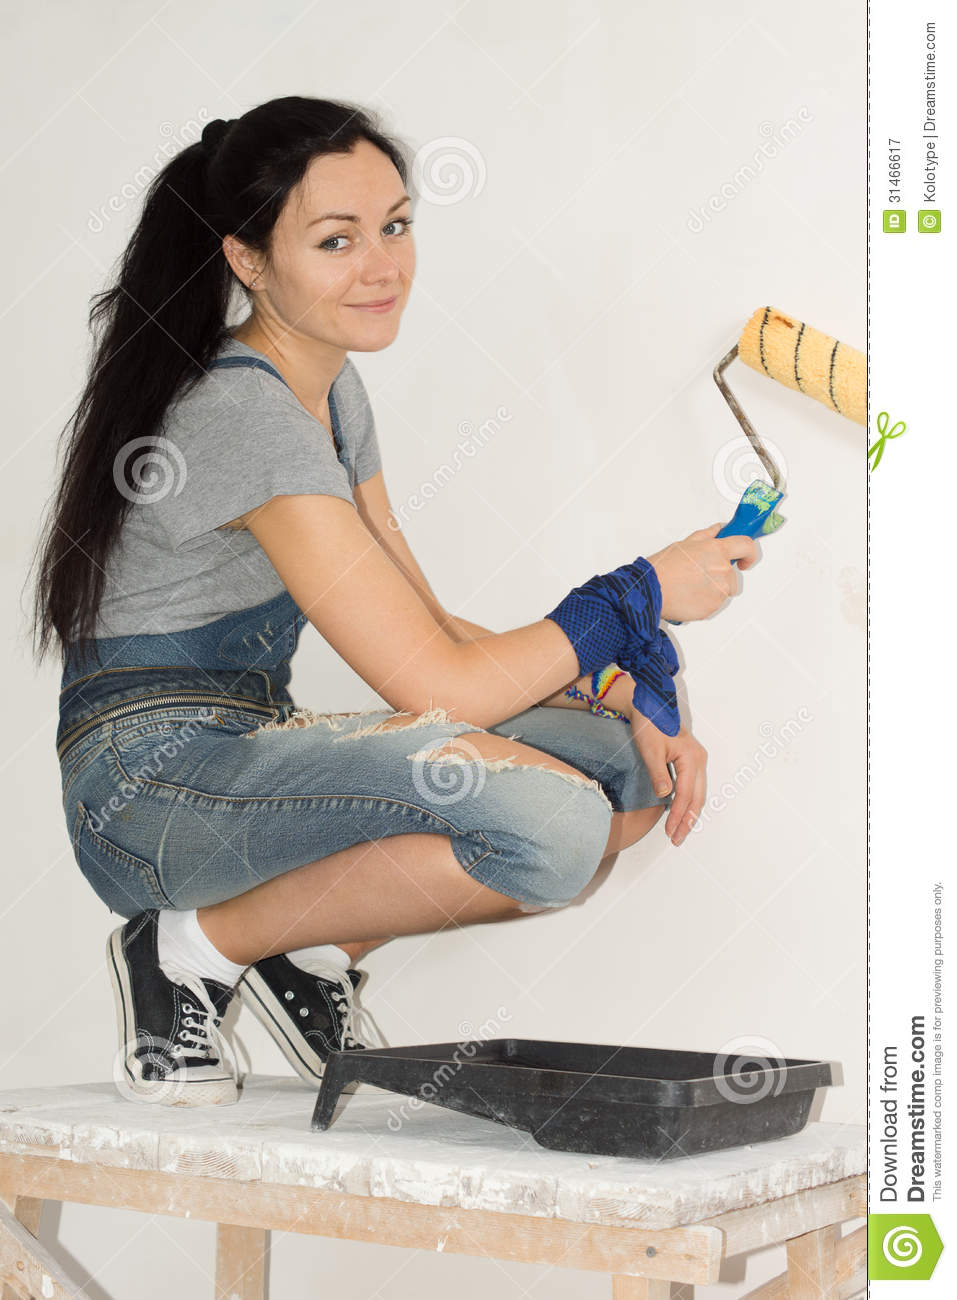 Painter And Decorator Prices >> Smiling Woman Painting The Wall Of Her Home Royalty Free Stock Photography - Image: 31466617